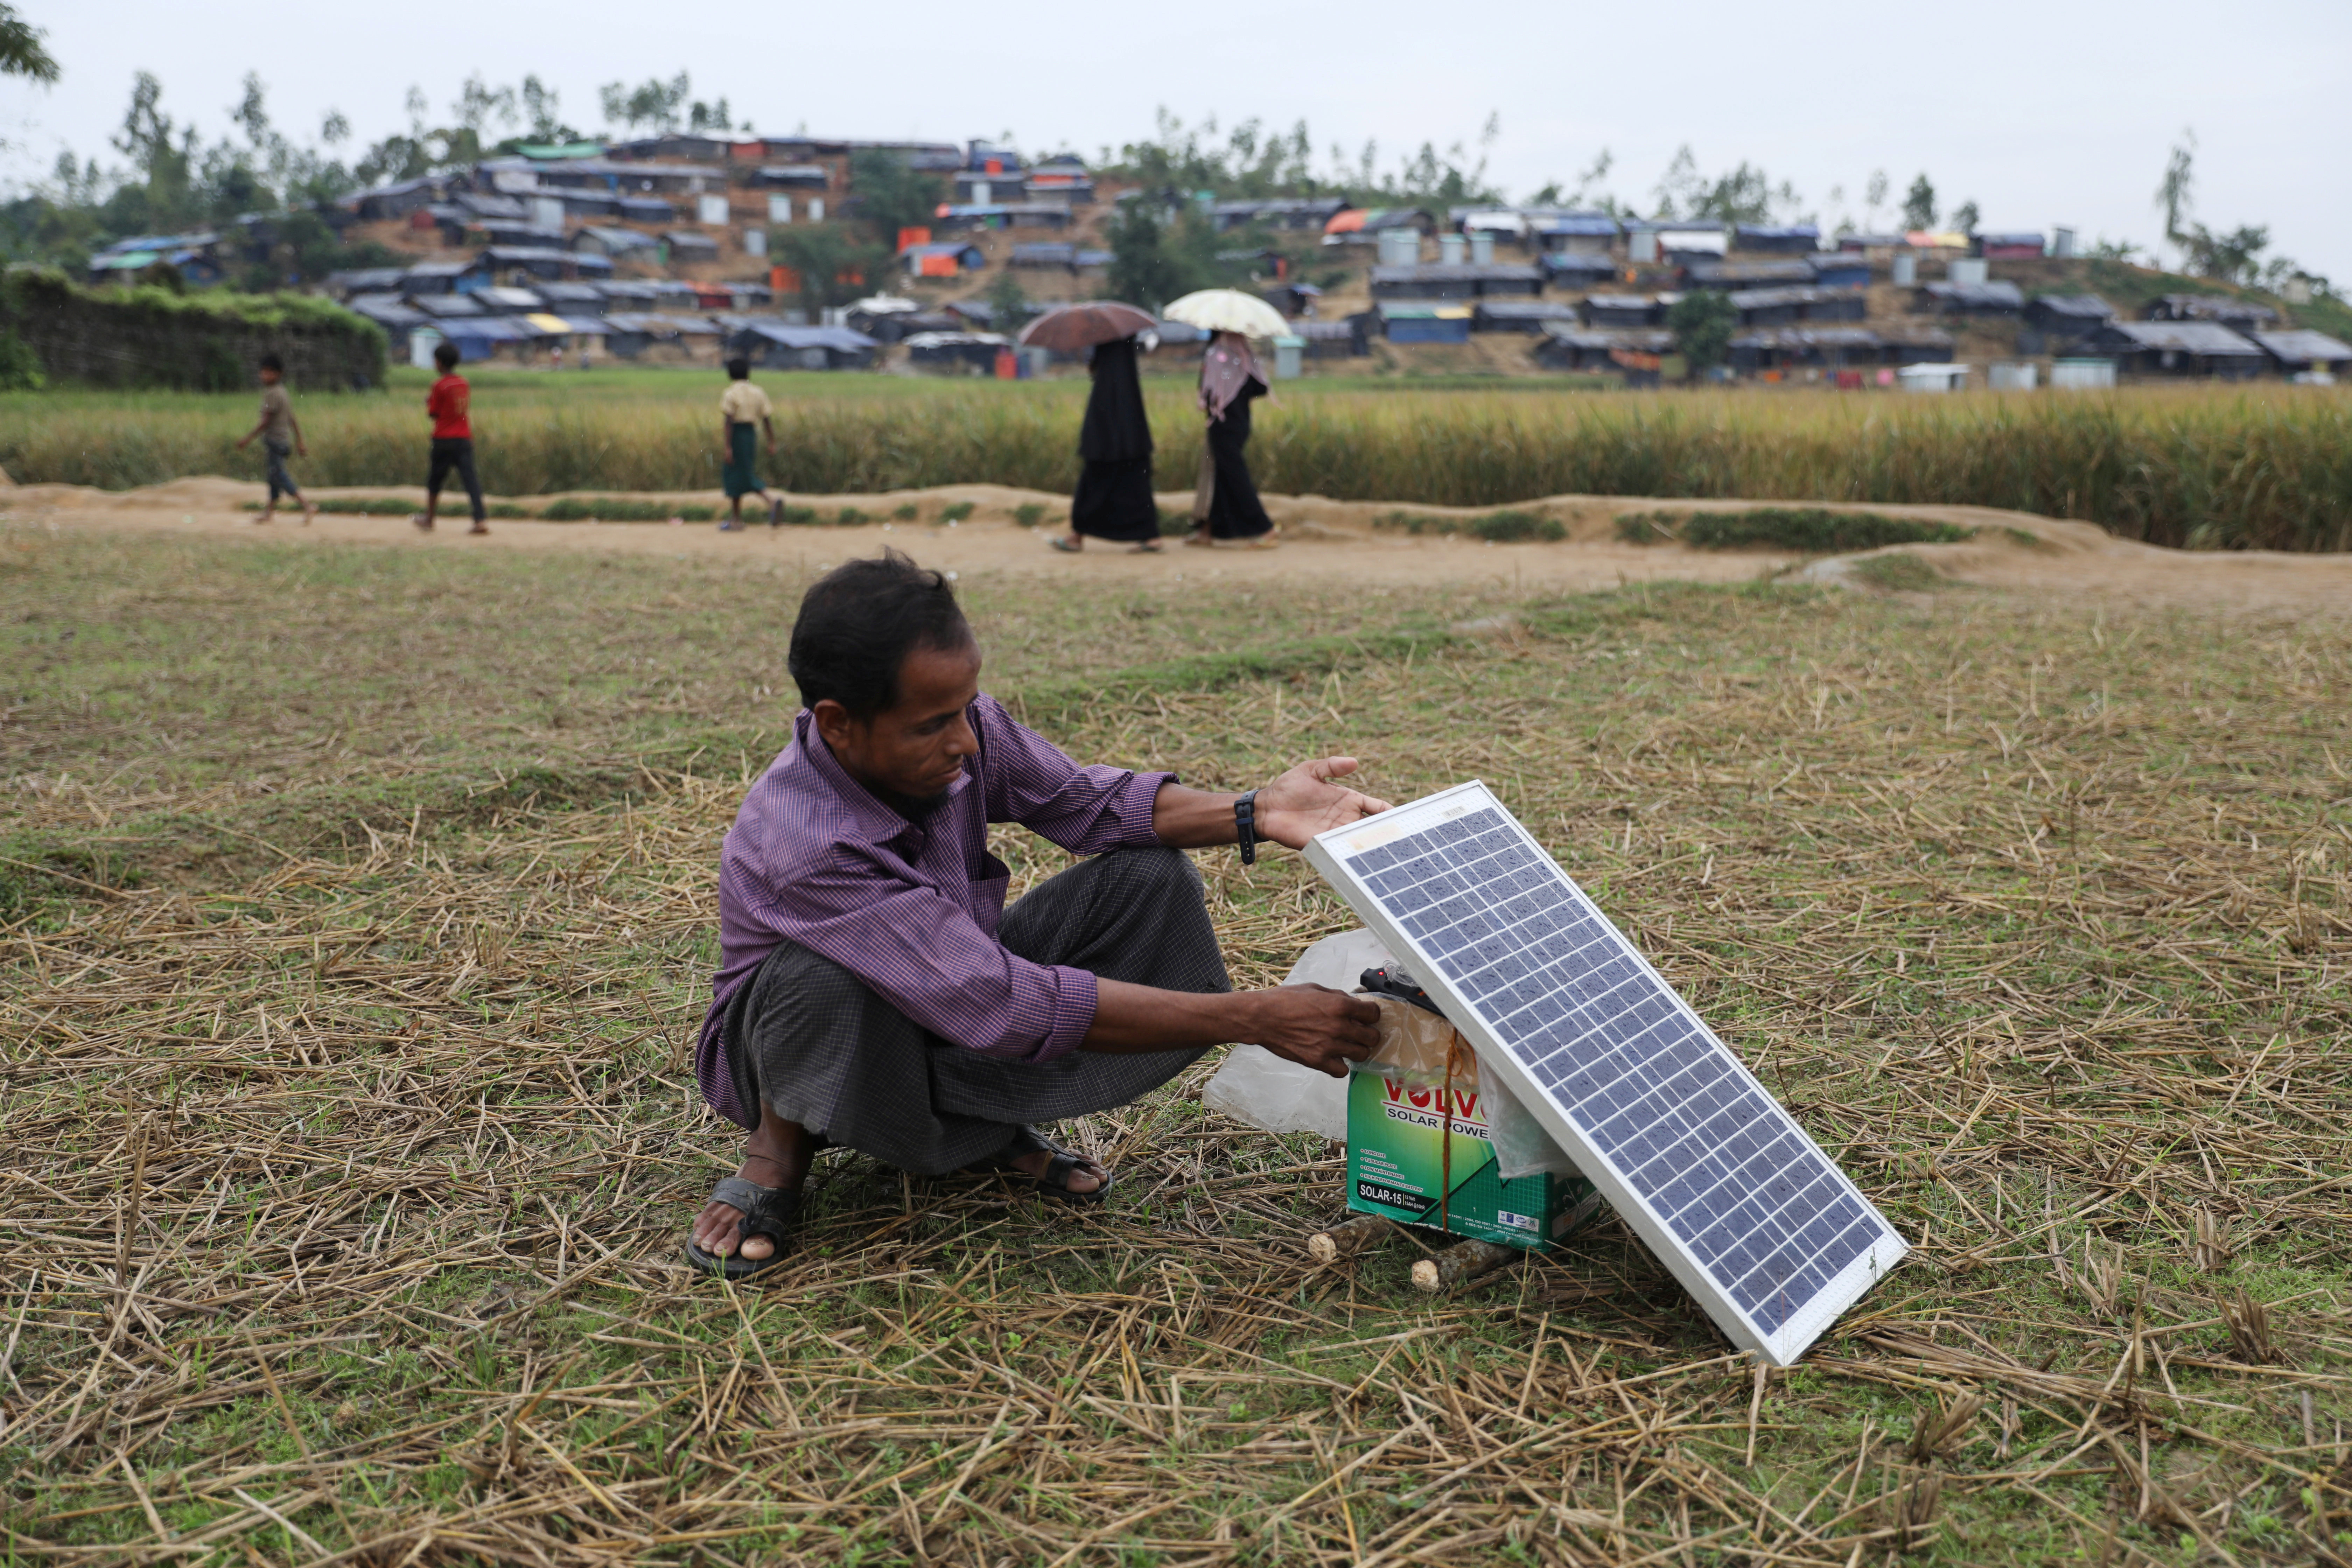 A Rohingya refugee man charges his mobile phone from a solar panel in the Palong Khali refugee camp in Cox's Bazar, Bangladesh, November 17, 2017. REUTERS/Mohammad Ponir Hossain - RC1F88C45AA0